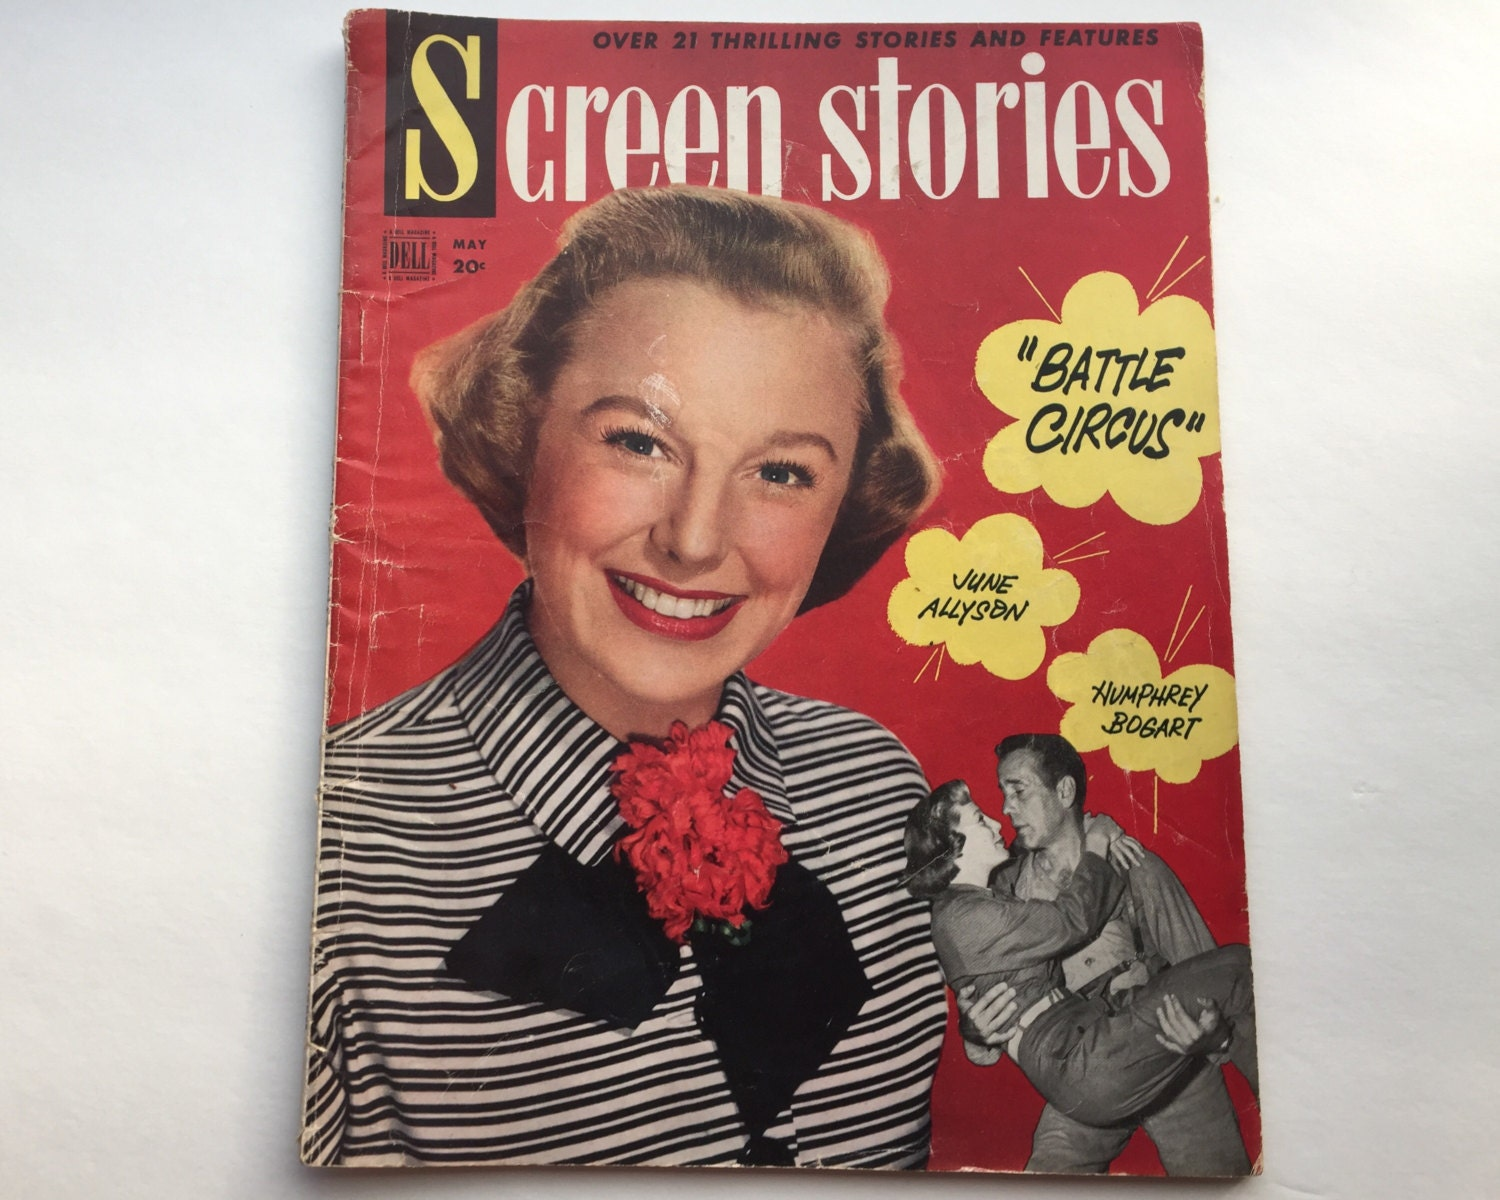 screen stories magazine may 1953 cover june allyson